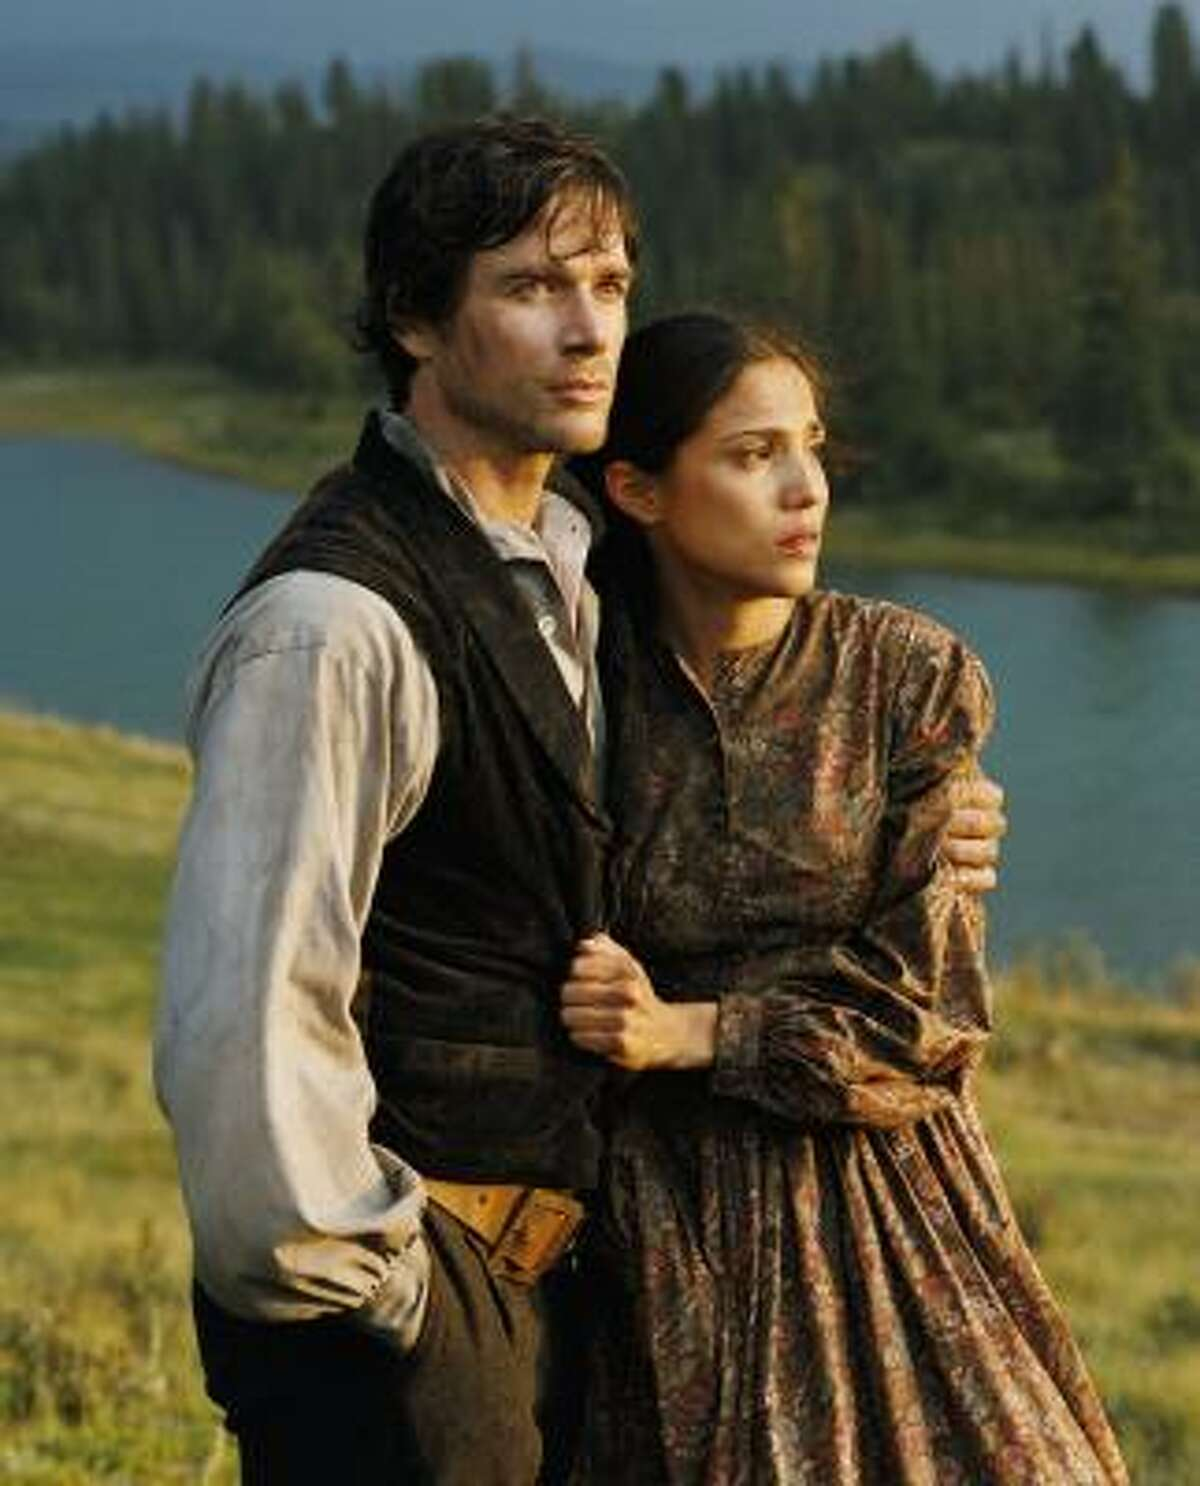 The mini-series Into the West, starring Matthew Settle and Tonantzin Carmelo, led all others with 16 Emmy nominations.